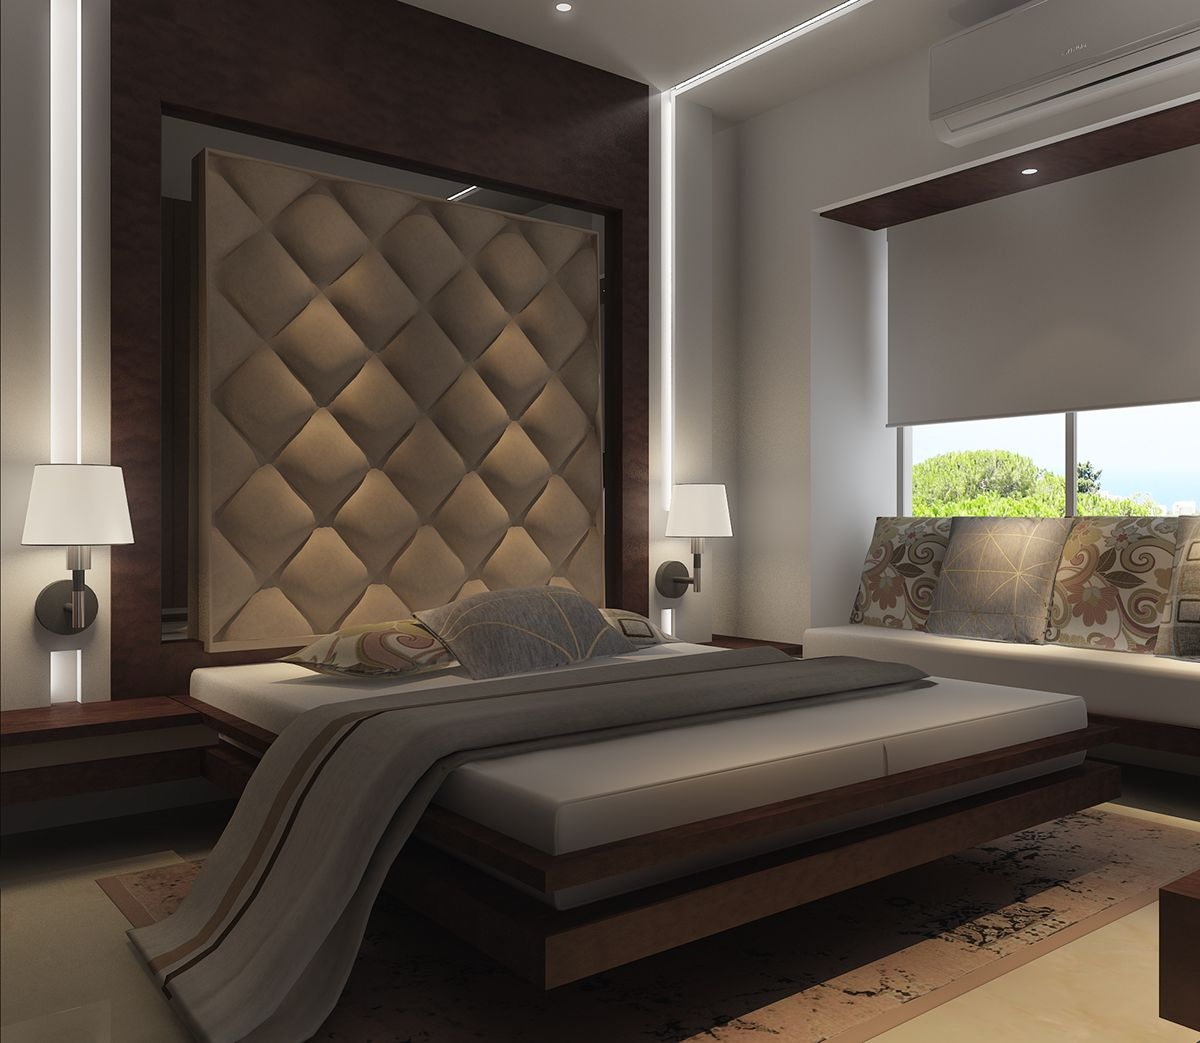 Modern Bedroom Interior Design: Residential 1 BHK On Behance